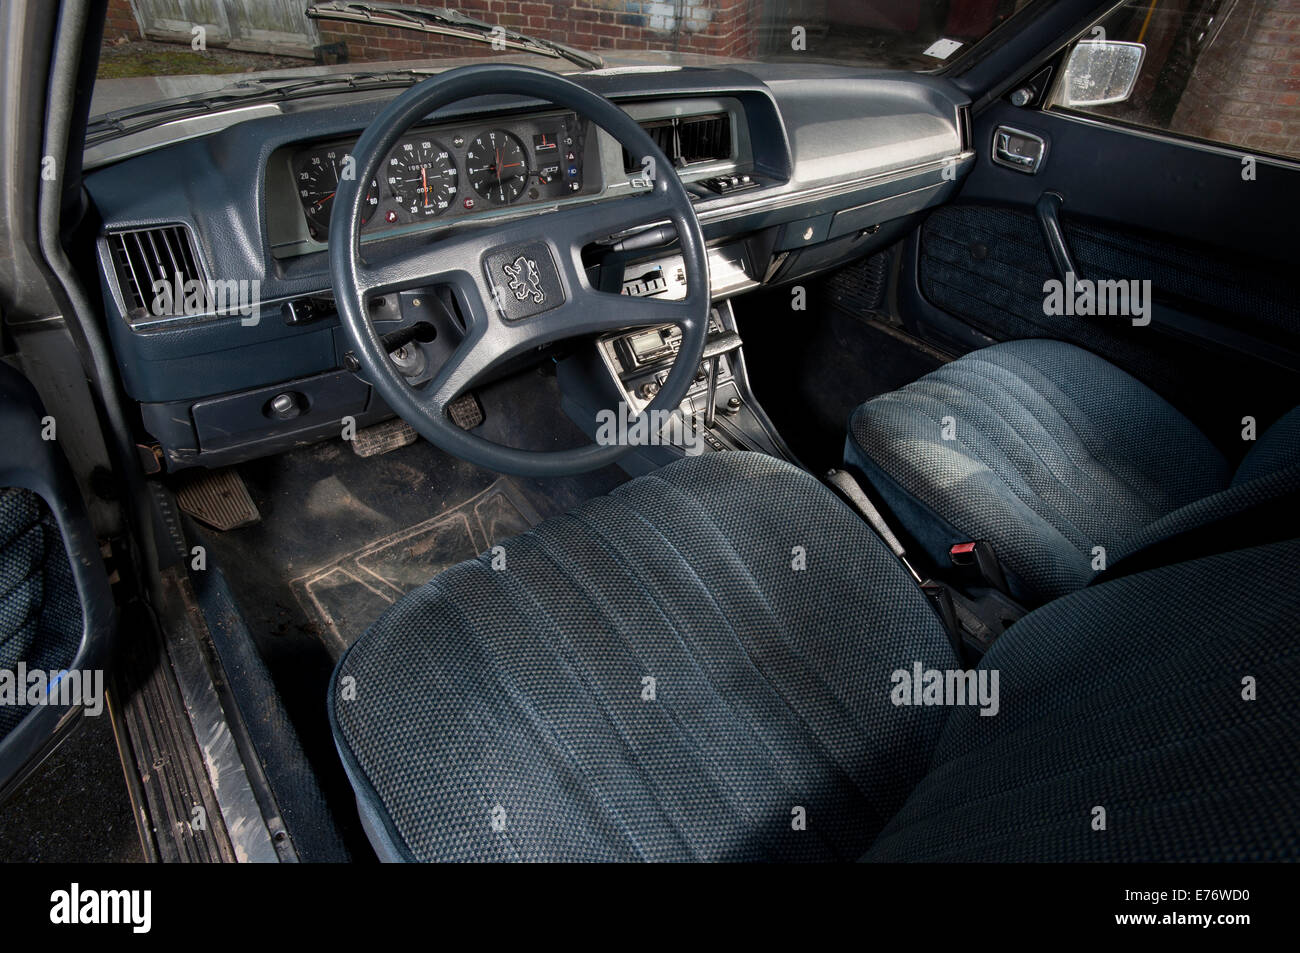 peugeot 604 french classic car early 80s model velour interior stock photo 73295740 alamy. Black Bedroom Furniture Sets. Home Design Ideas